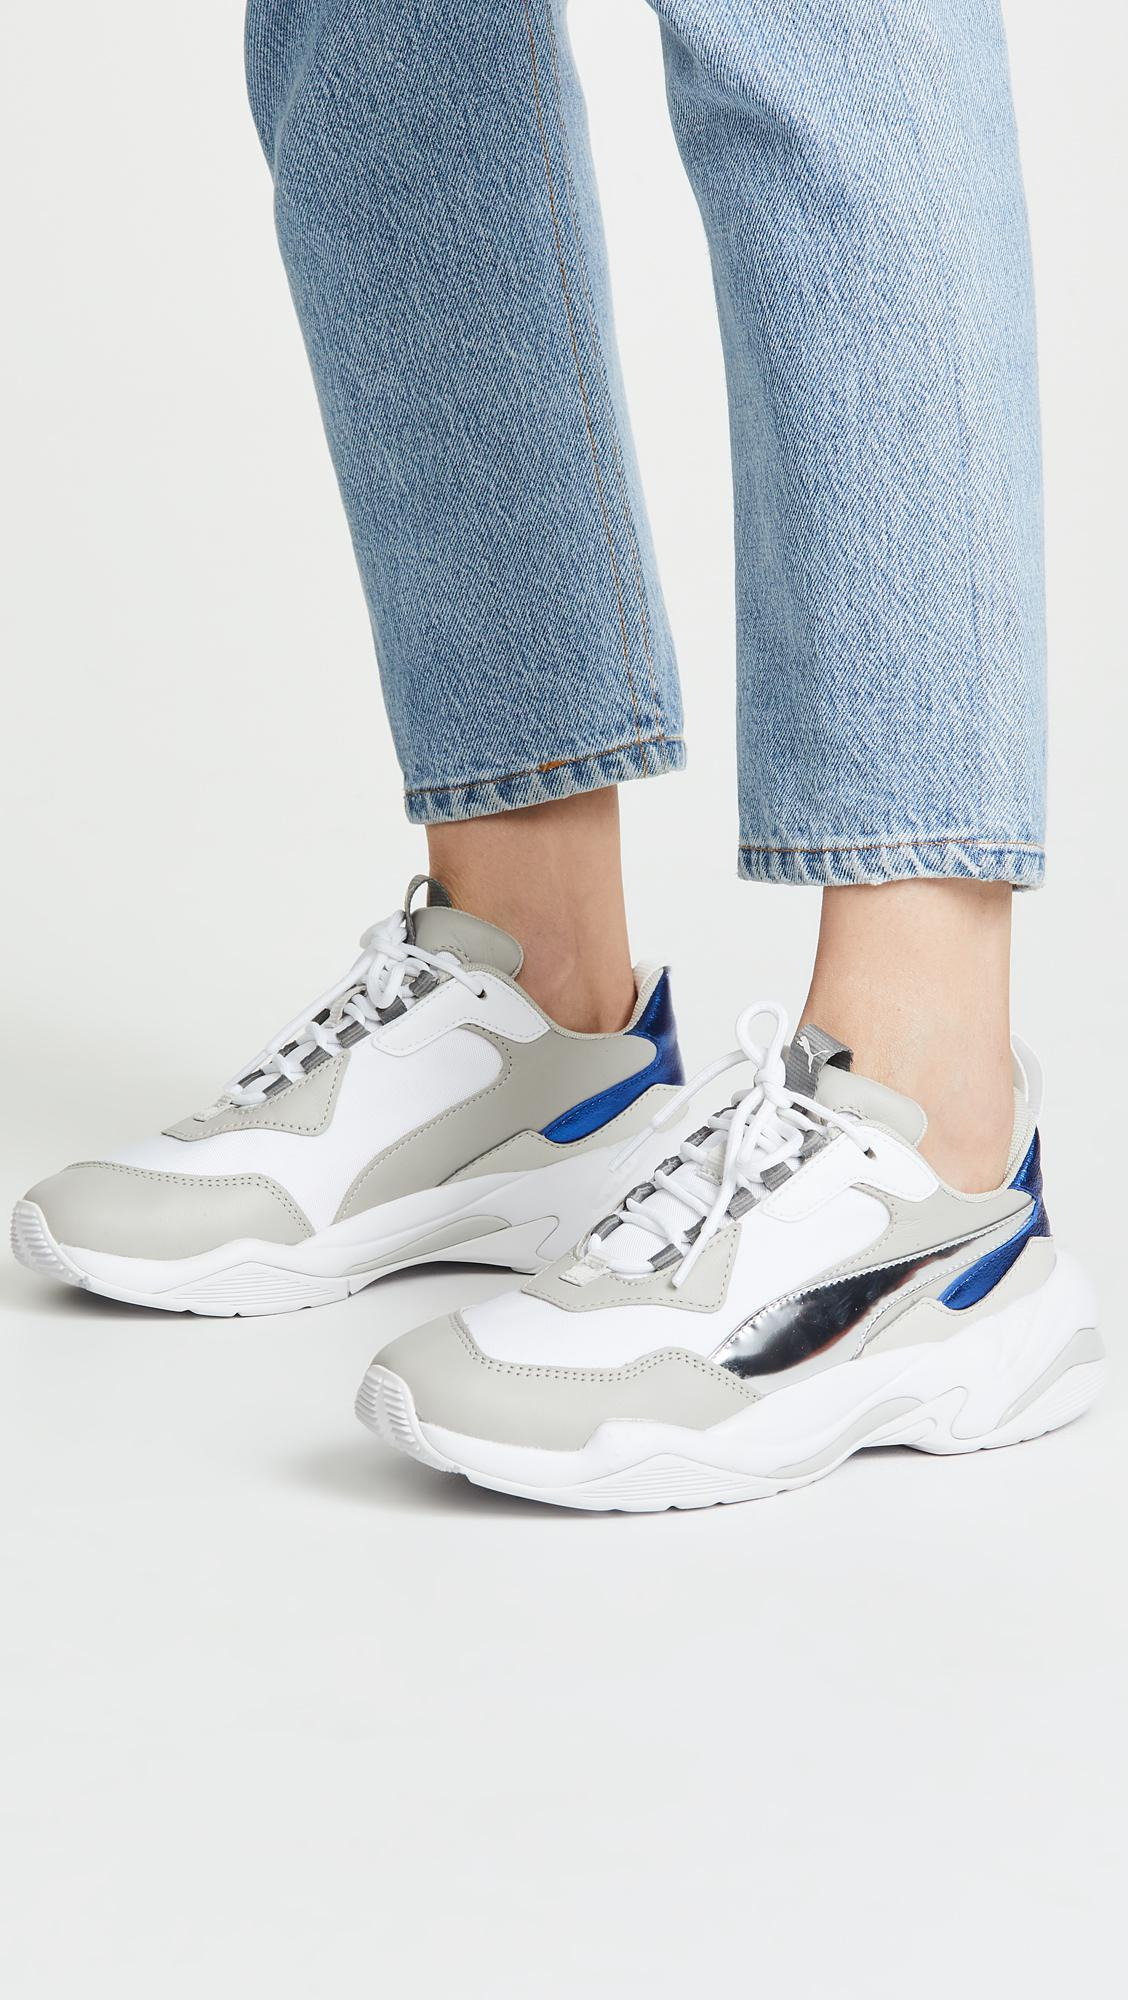 61f6d98d62e521 Lyst - PUMA Thunder Electric Sneakers in White